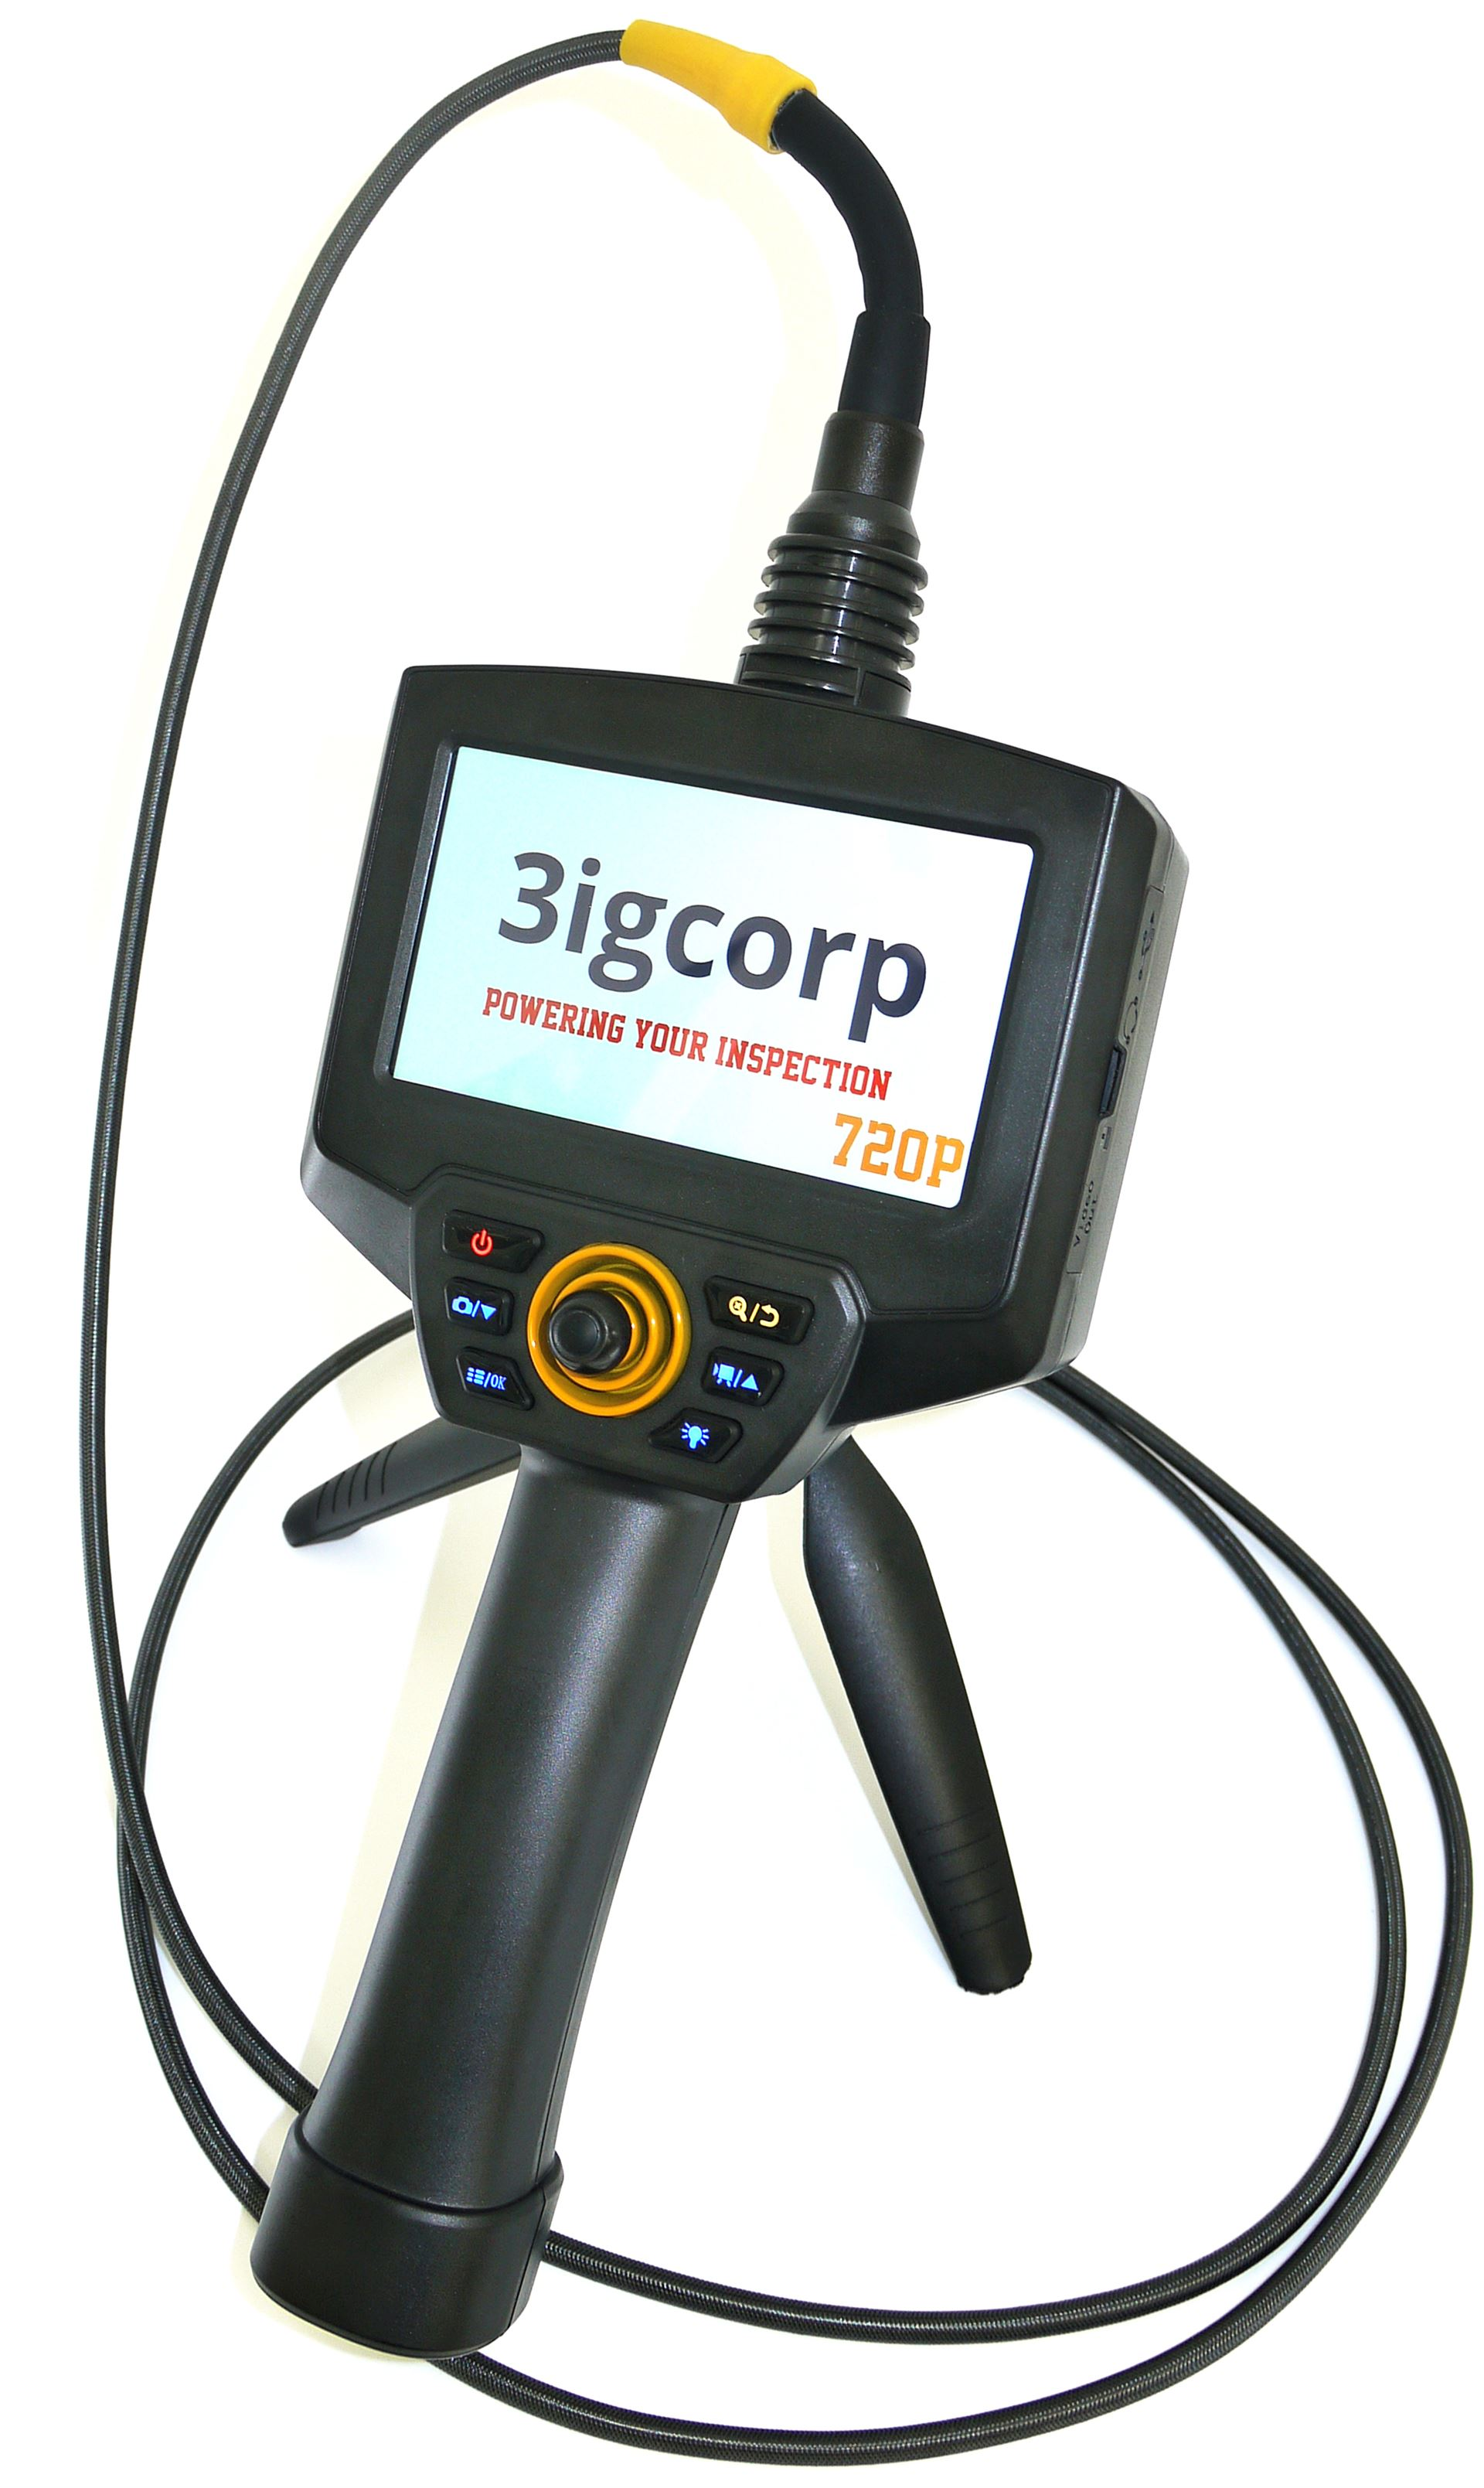 IDEALBORESCOPE brings Visual Inspection to High definition